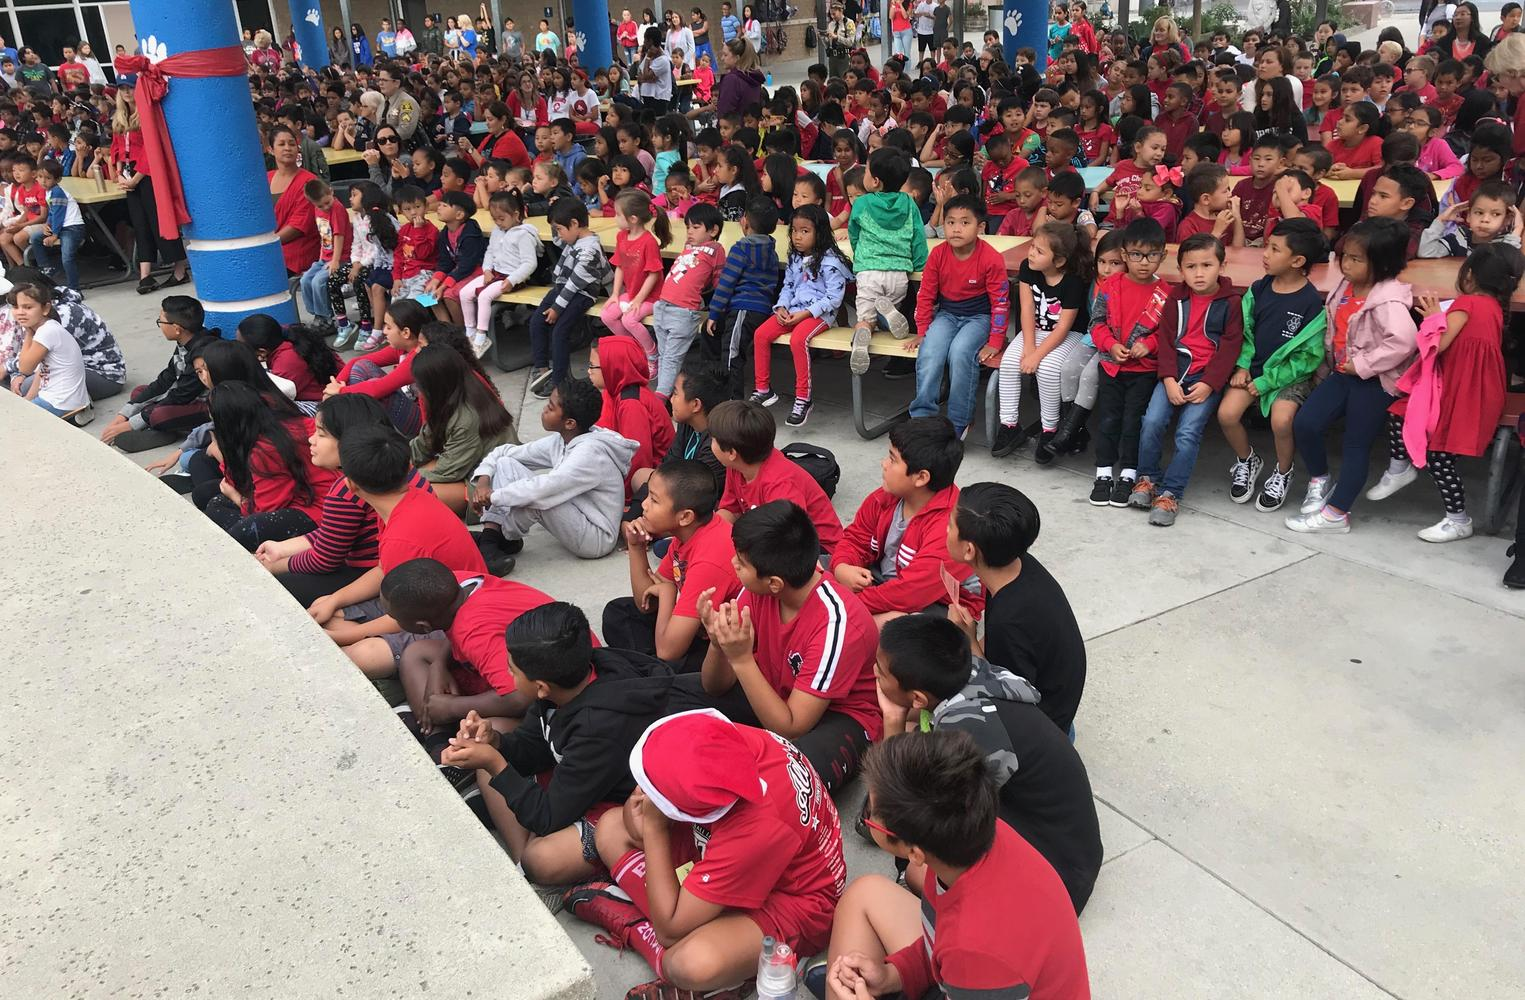 Children dressed in red sitting on lunch tables fro assembly